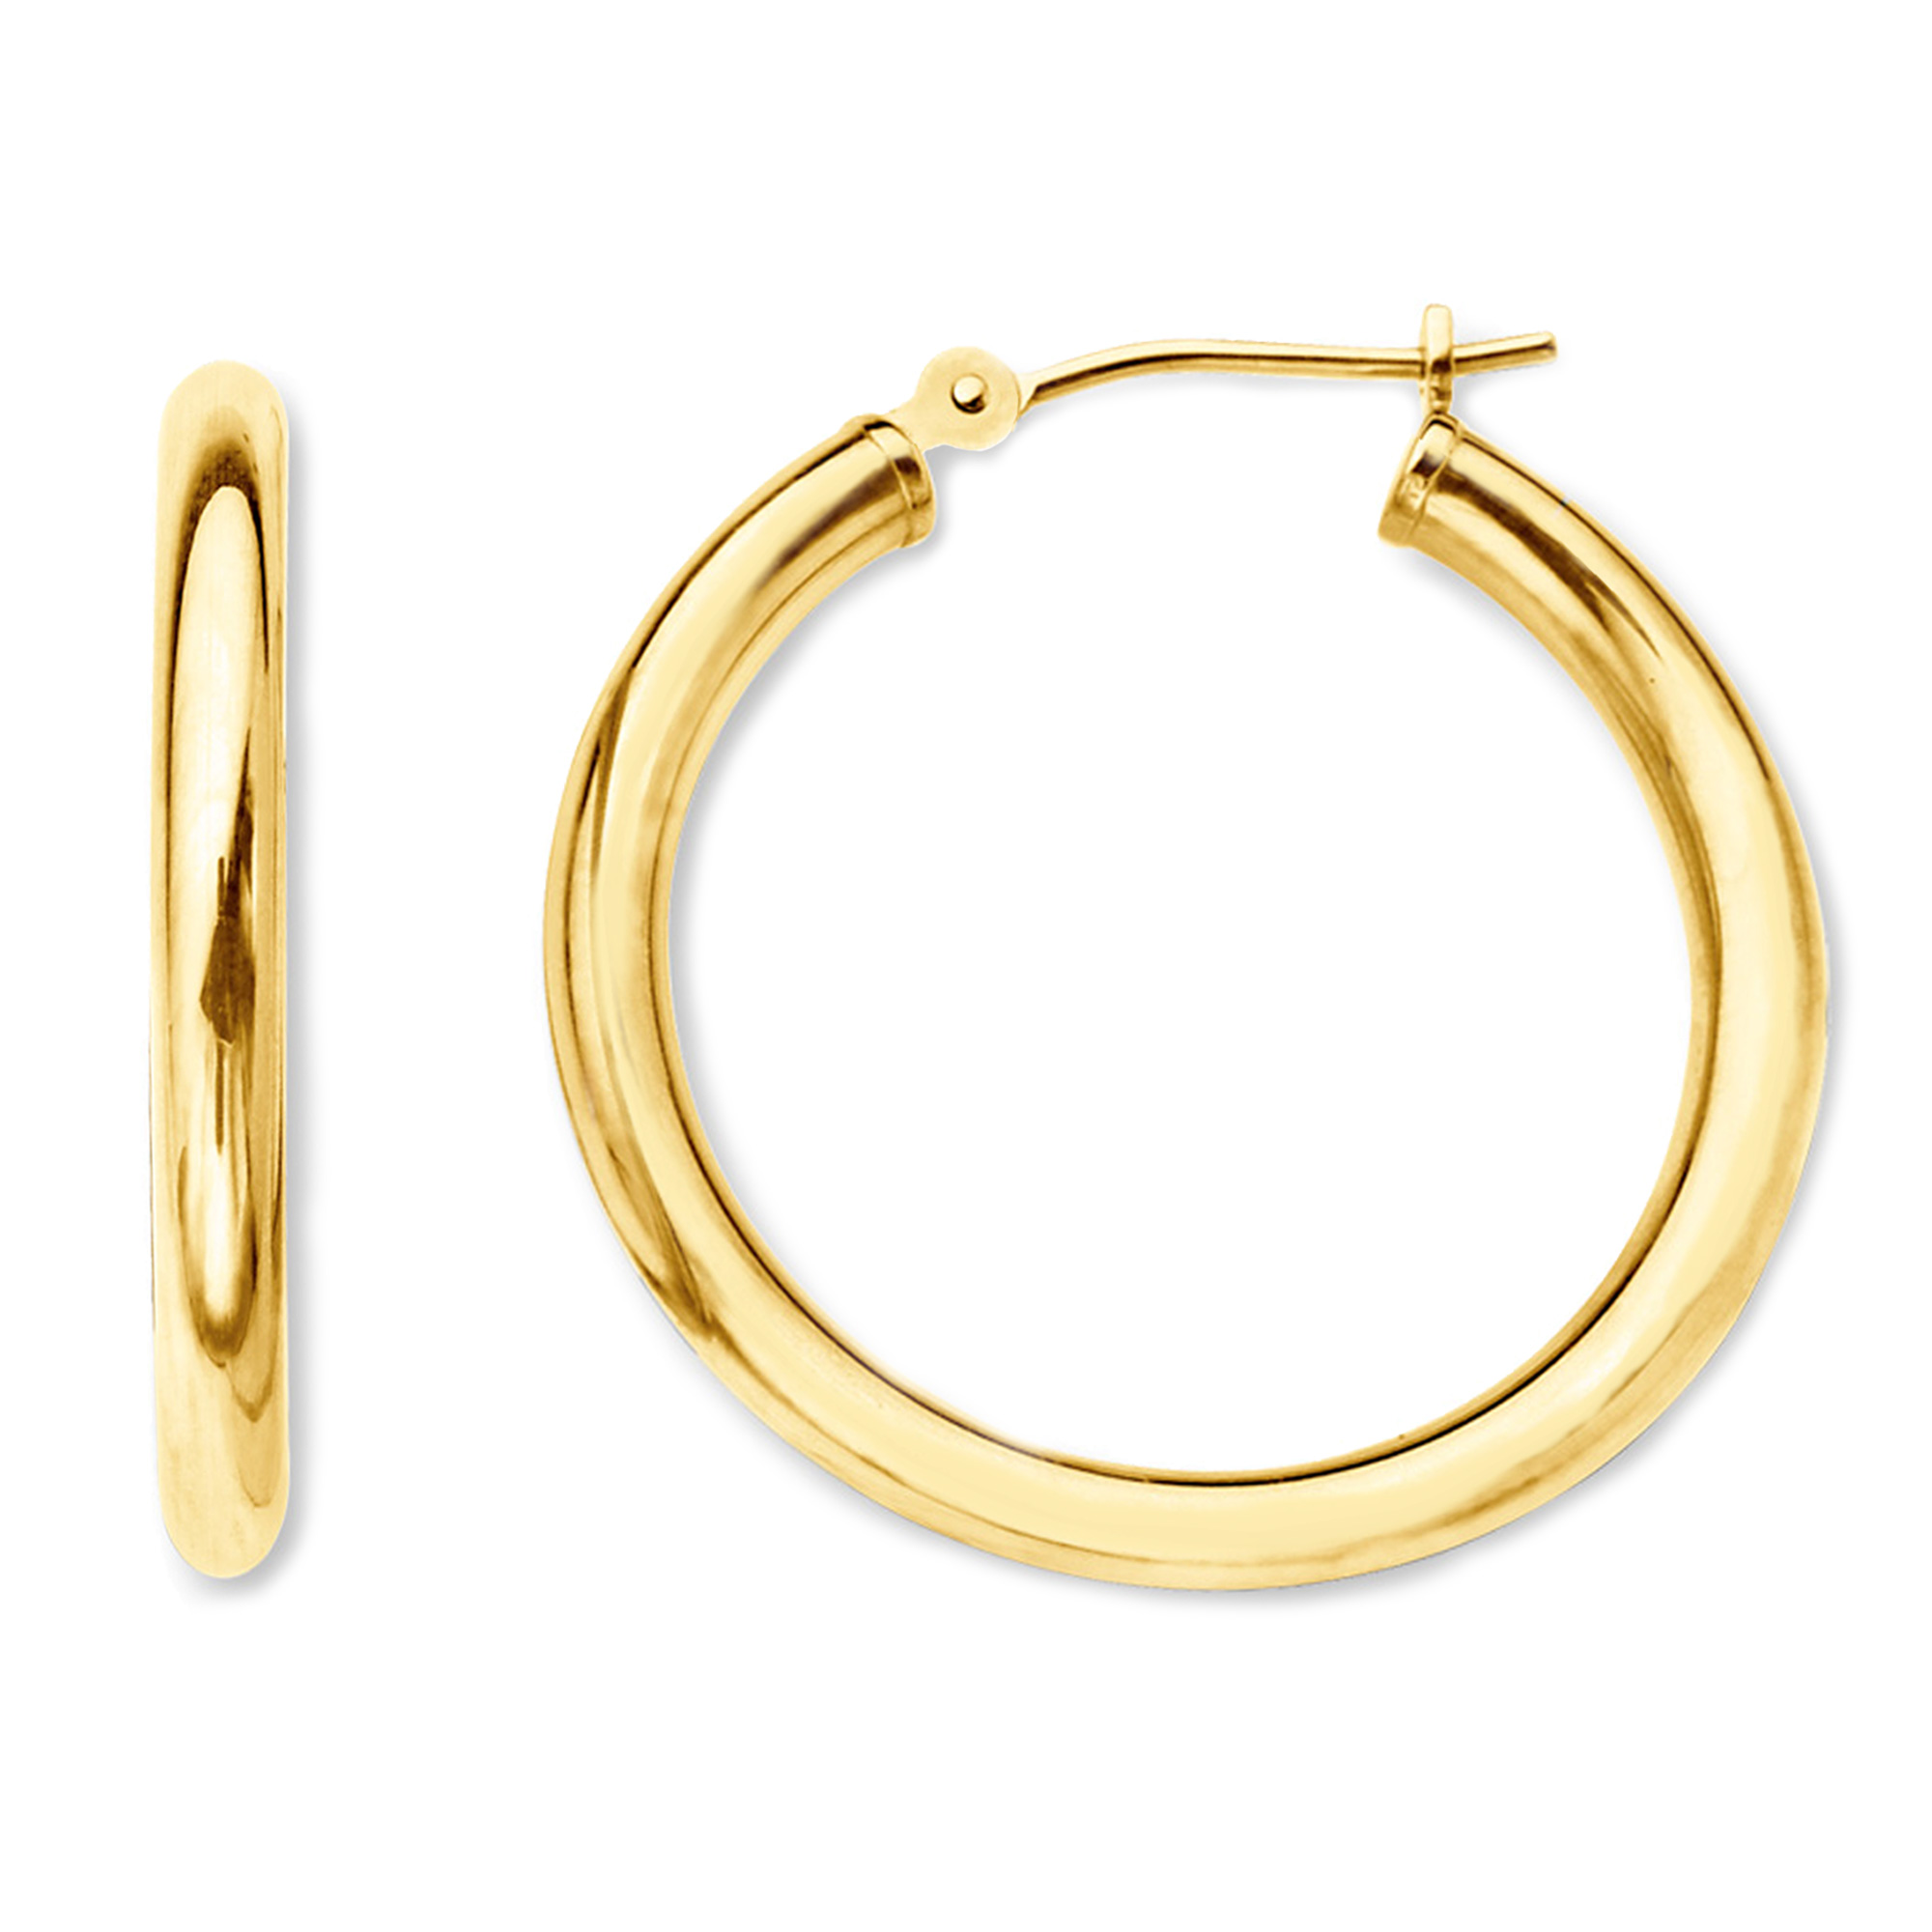 10k Yellow Gold 2mm Shiny Round Tube Hoop Earrings, Diameter 40mm Complete your jewelry collection with a gorgeous pair of 10k gold hoop earrings. Whether you prefer large bohemian look or tiny orbs, you'll discover plenty of sizes to match your style. These earrings have a secure snap post clasp making them easy to wear and remove.